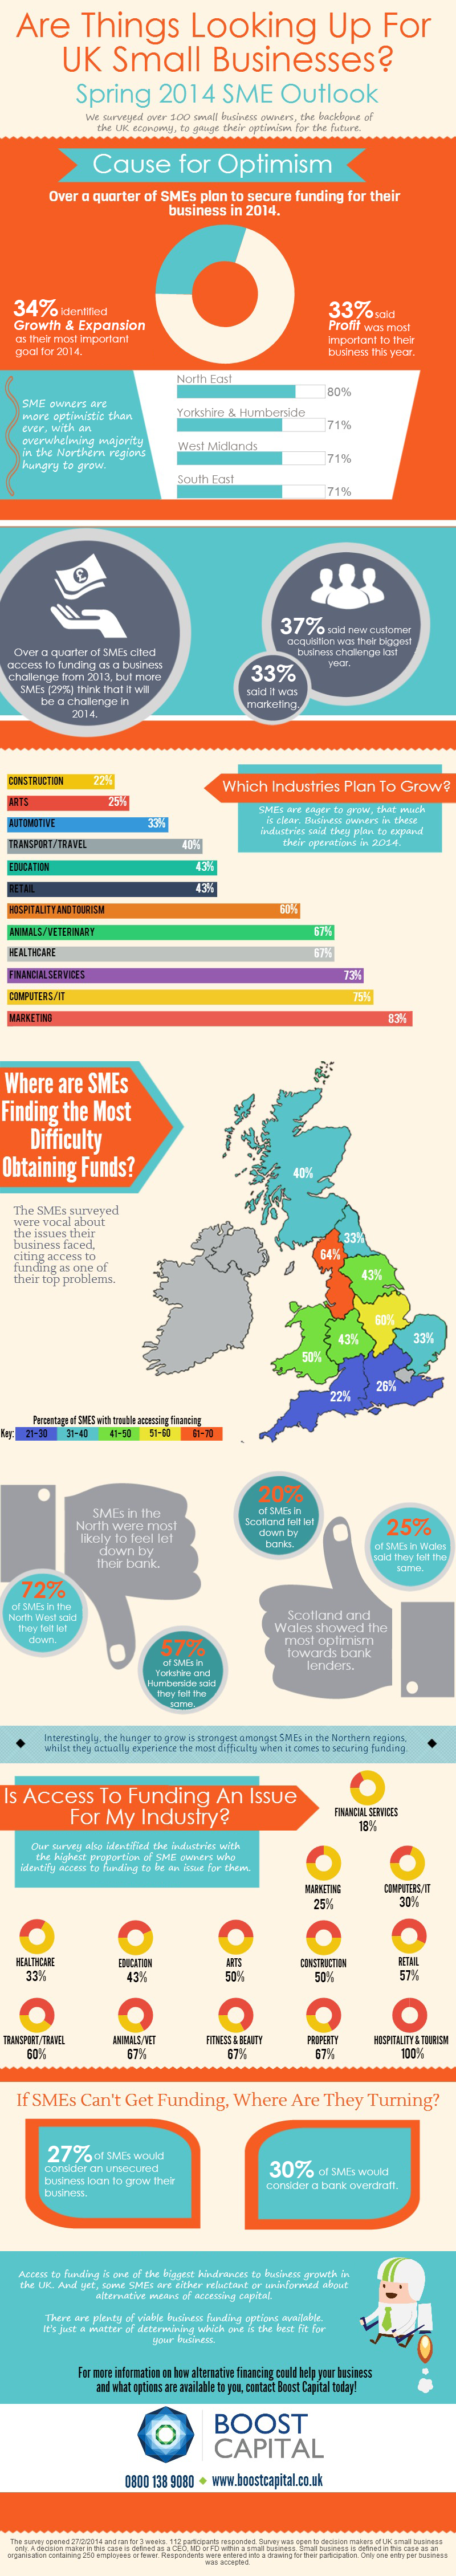 UK Small Business Growth & Funding Needs